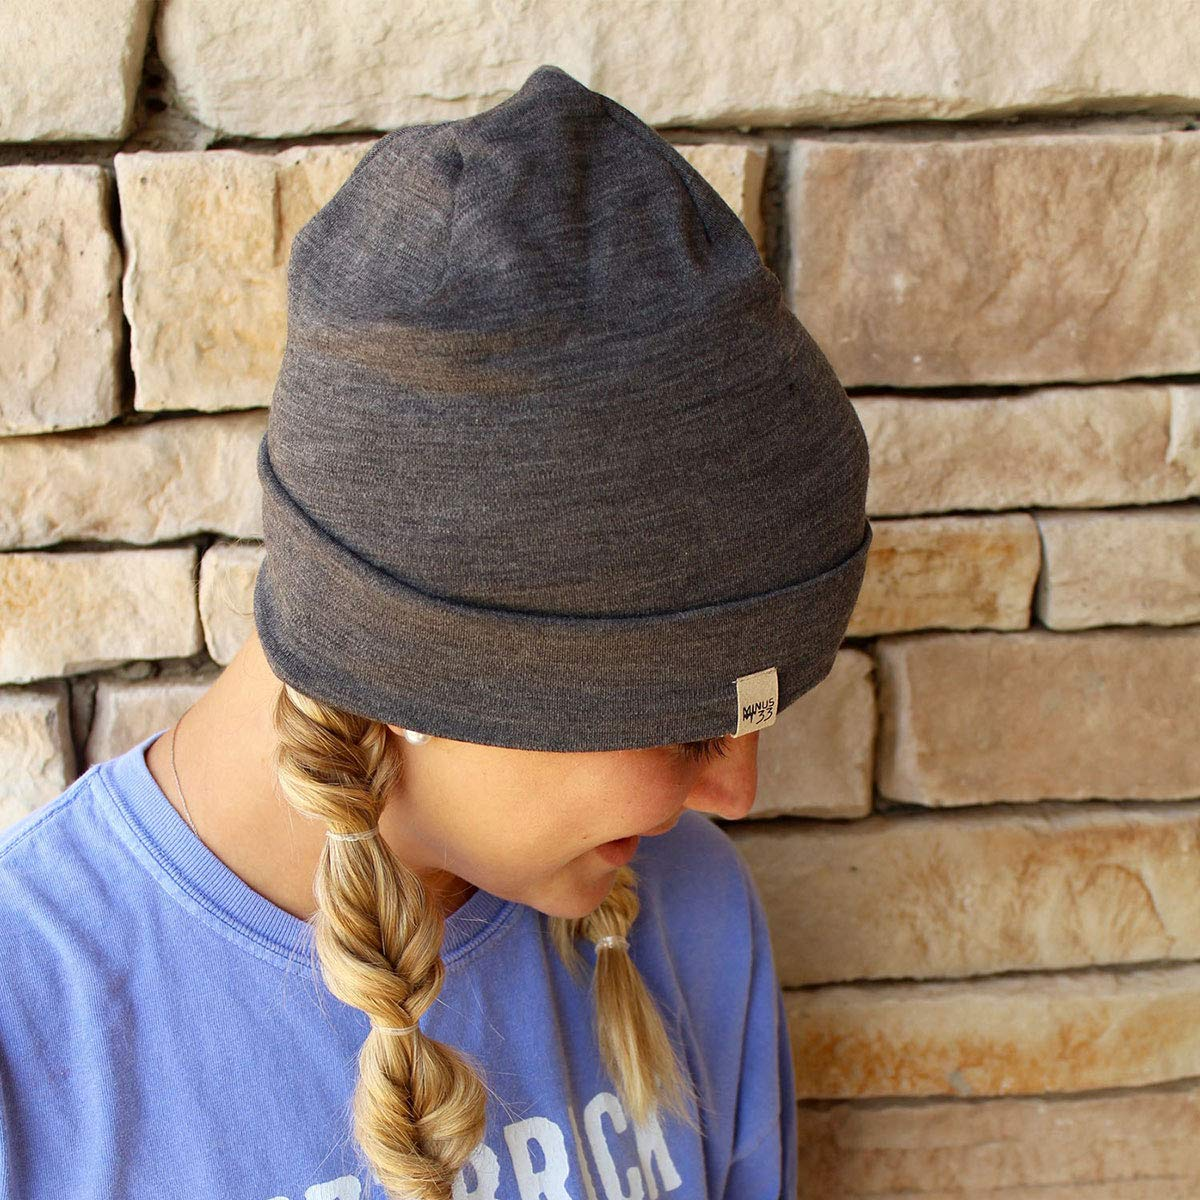 bb4ff4f5f7b Minus33 Merino Wool Ridge Cuff Beanie Charcoal One Size  Amazon.in  Clothing    Accessories